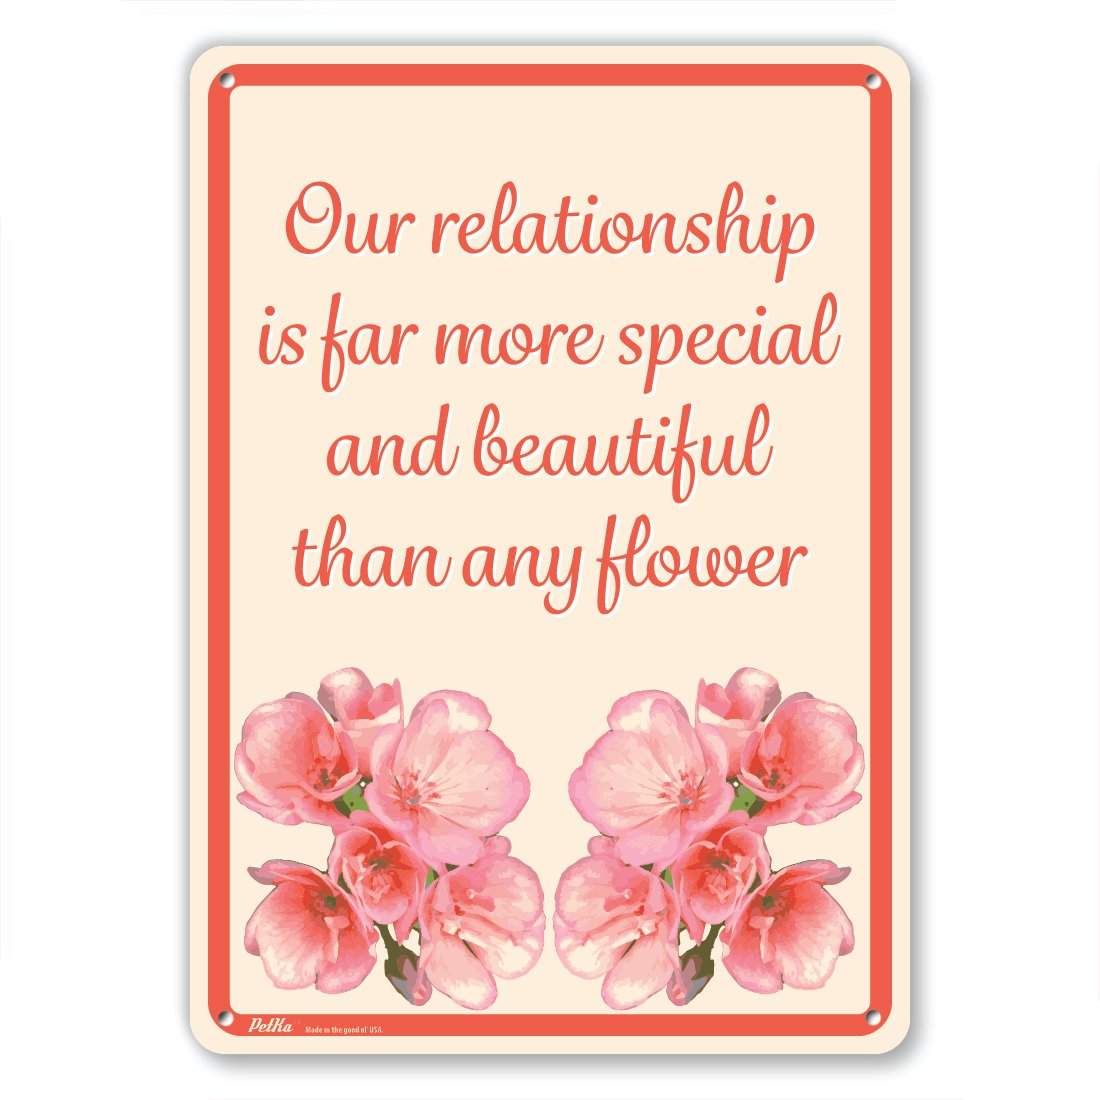 7 x 10 PetKa Signs and Graphics PKFW-0116-NA/_7x10Our relationship is far more special and beautiful than any flower Aluminum Sign Red Flowers on Cream